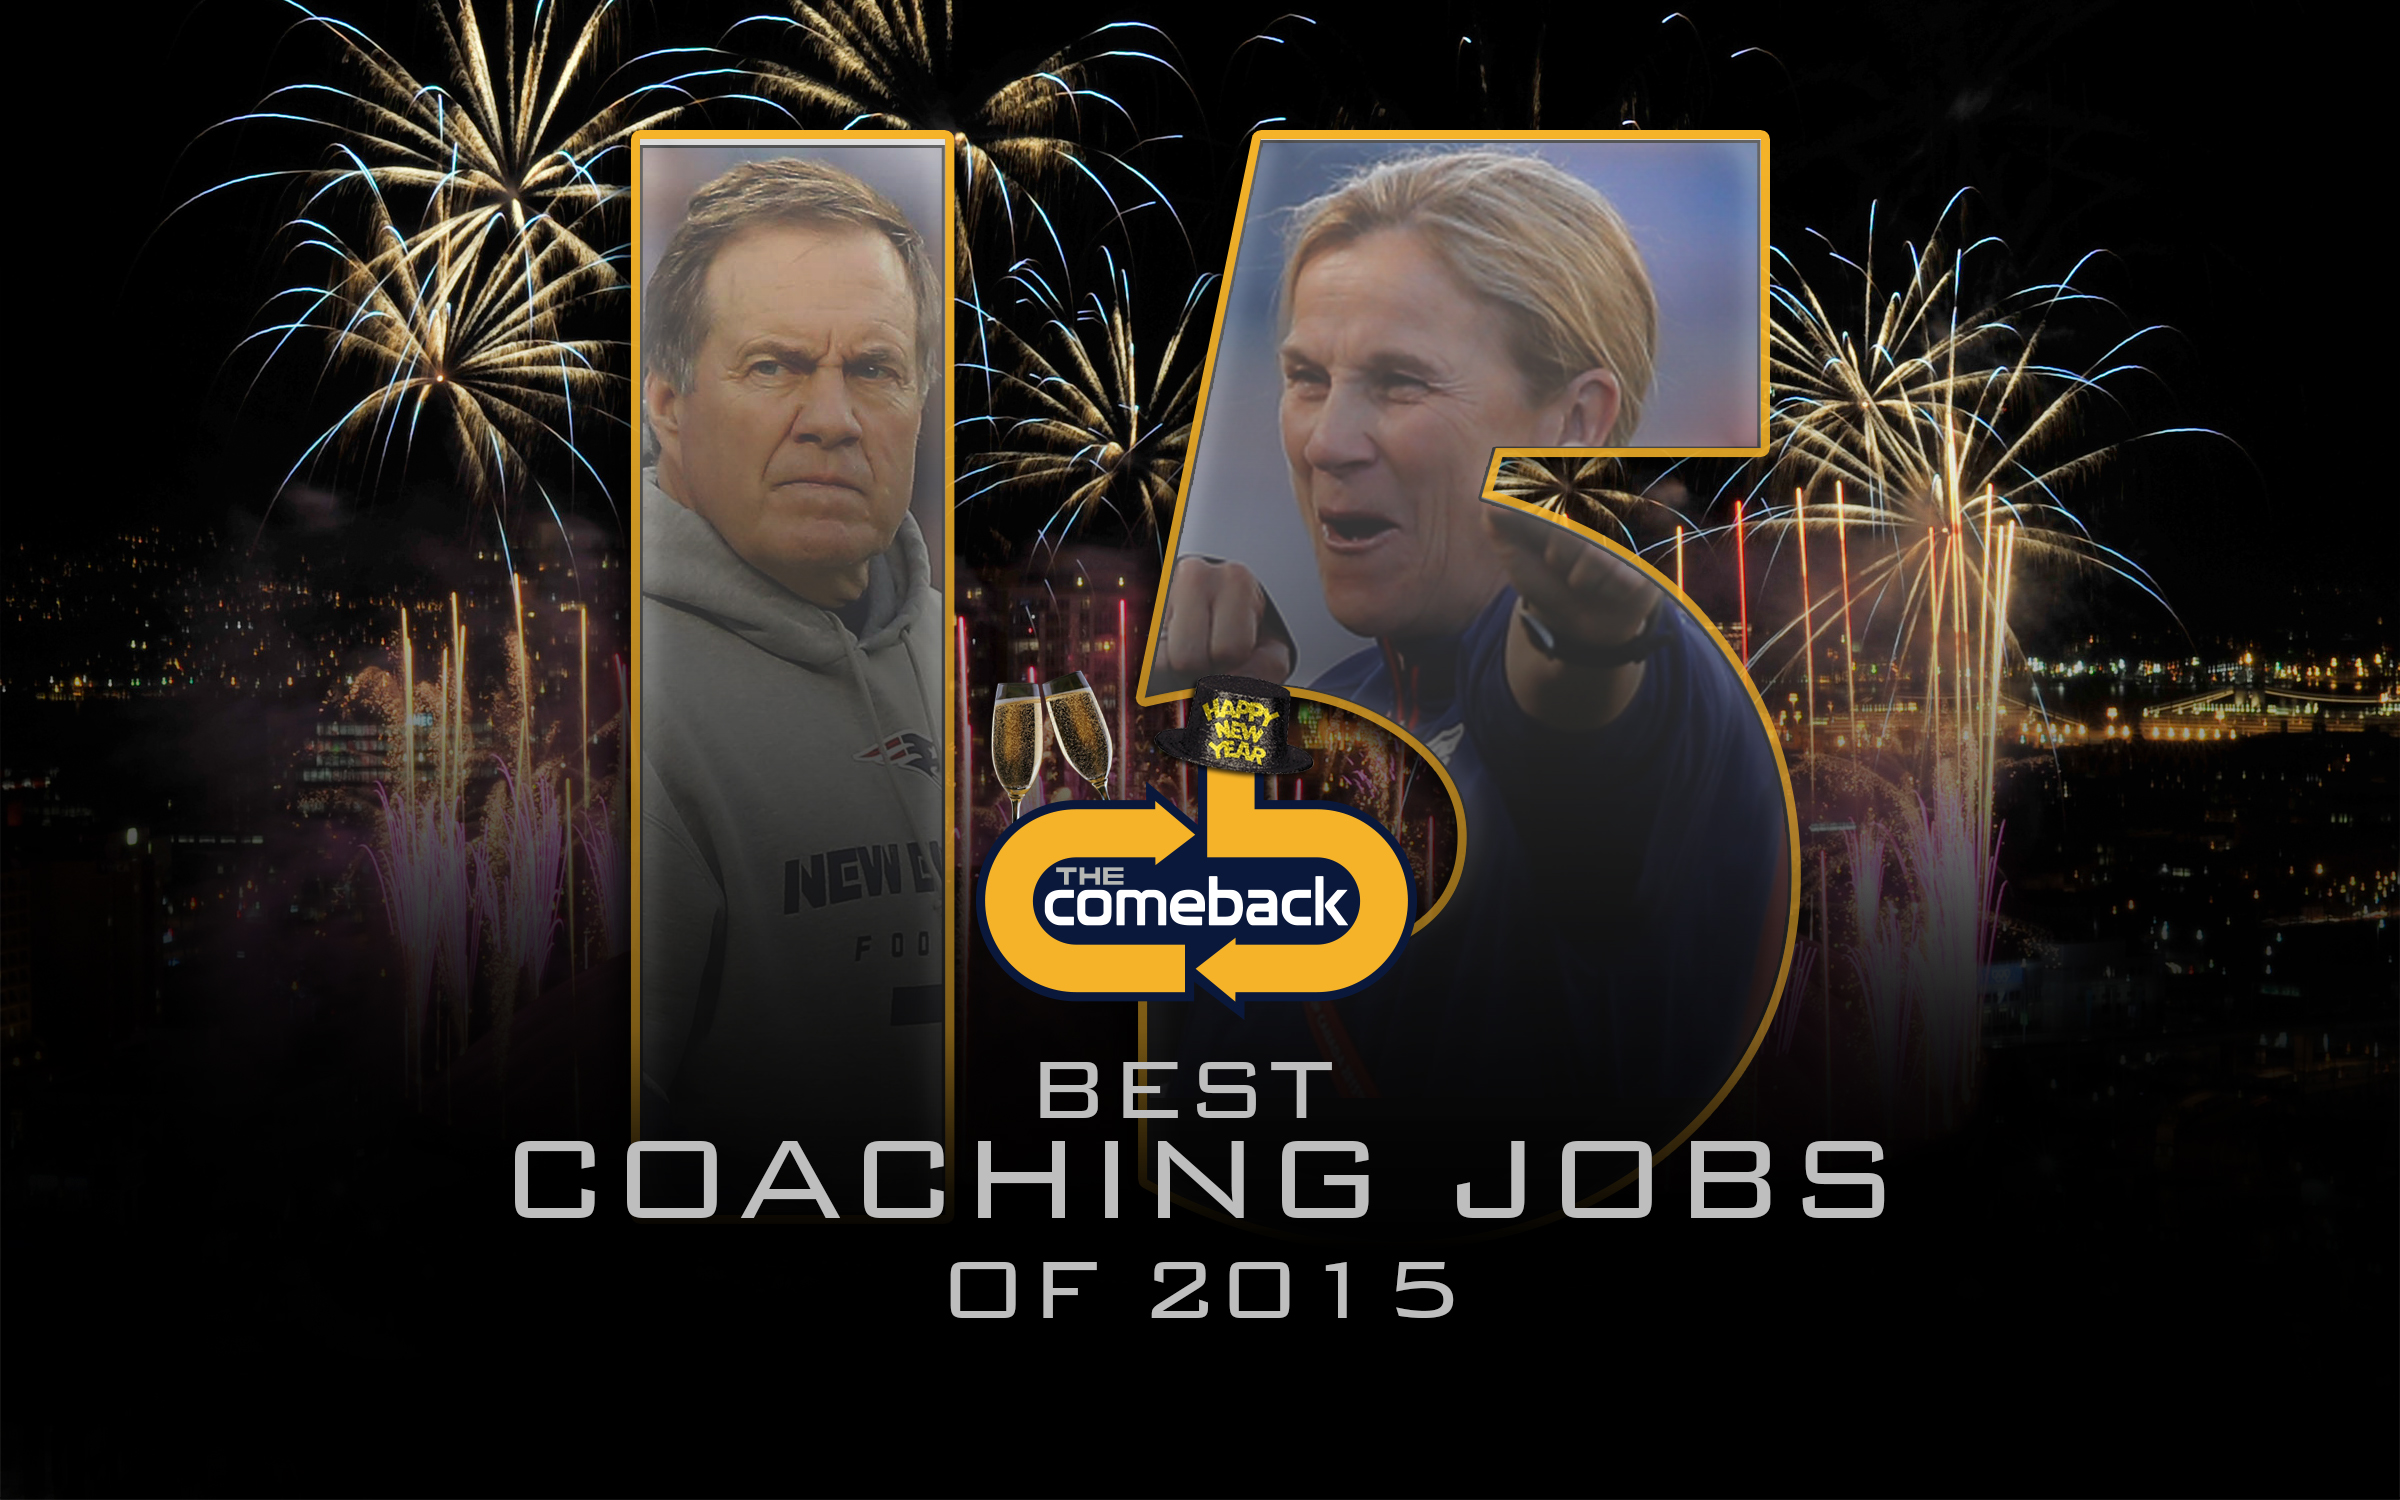 The 15 Best Coaching Jobs of 2015